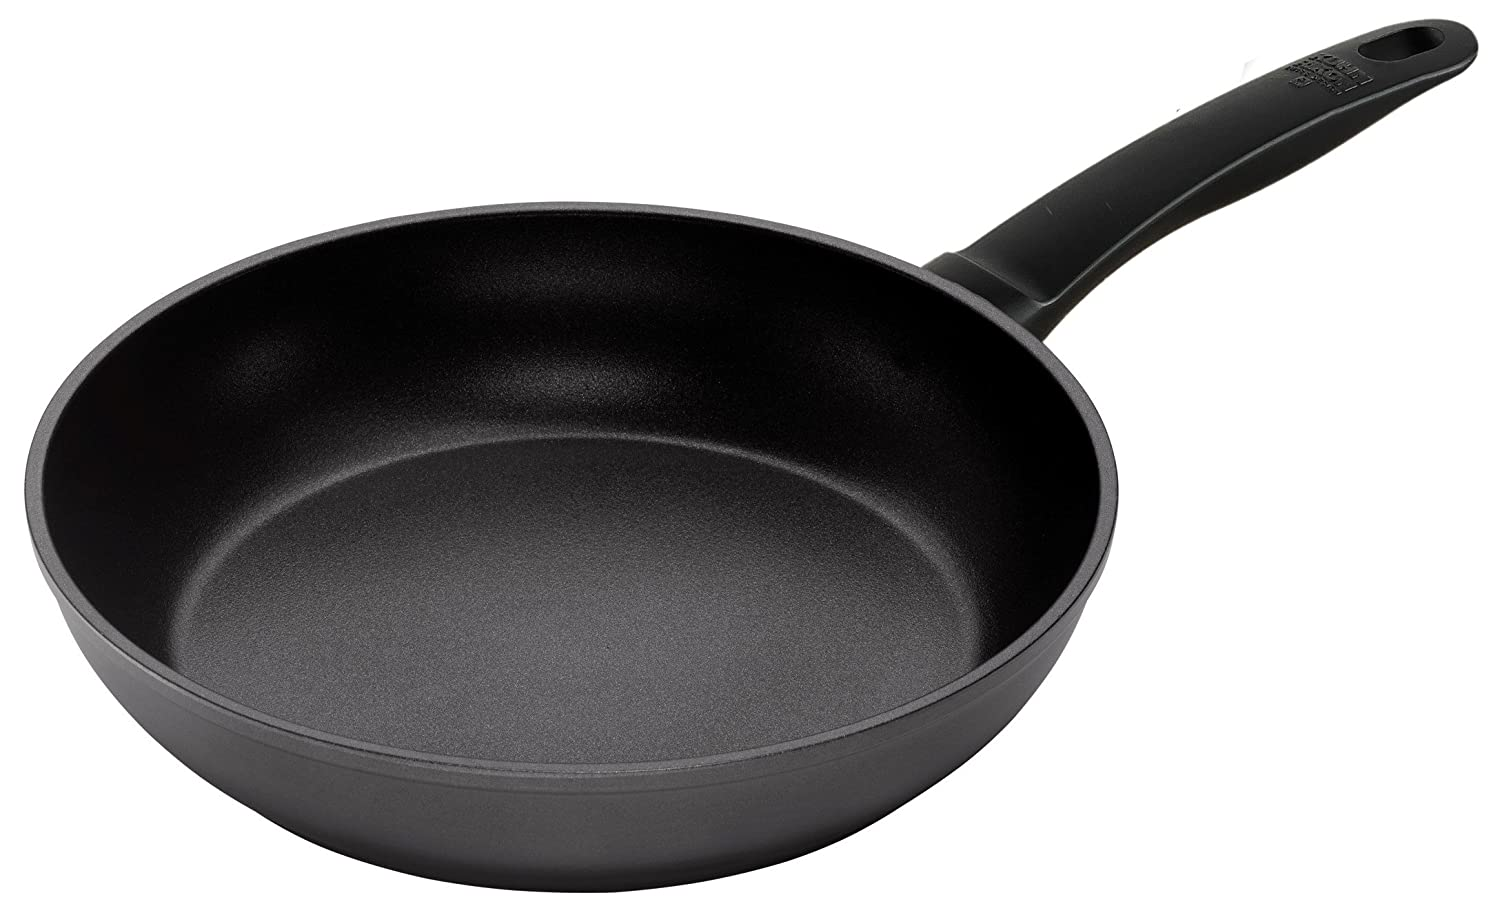 Kuhn Rikon Easy Induction Non-Stick Frying Pan, 8-Inch, Aluminum, Black